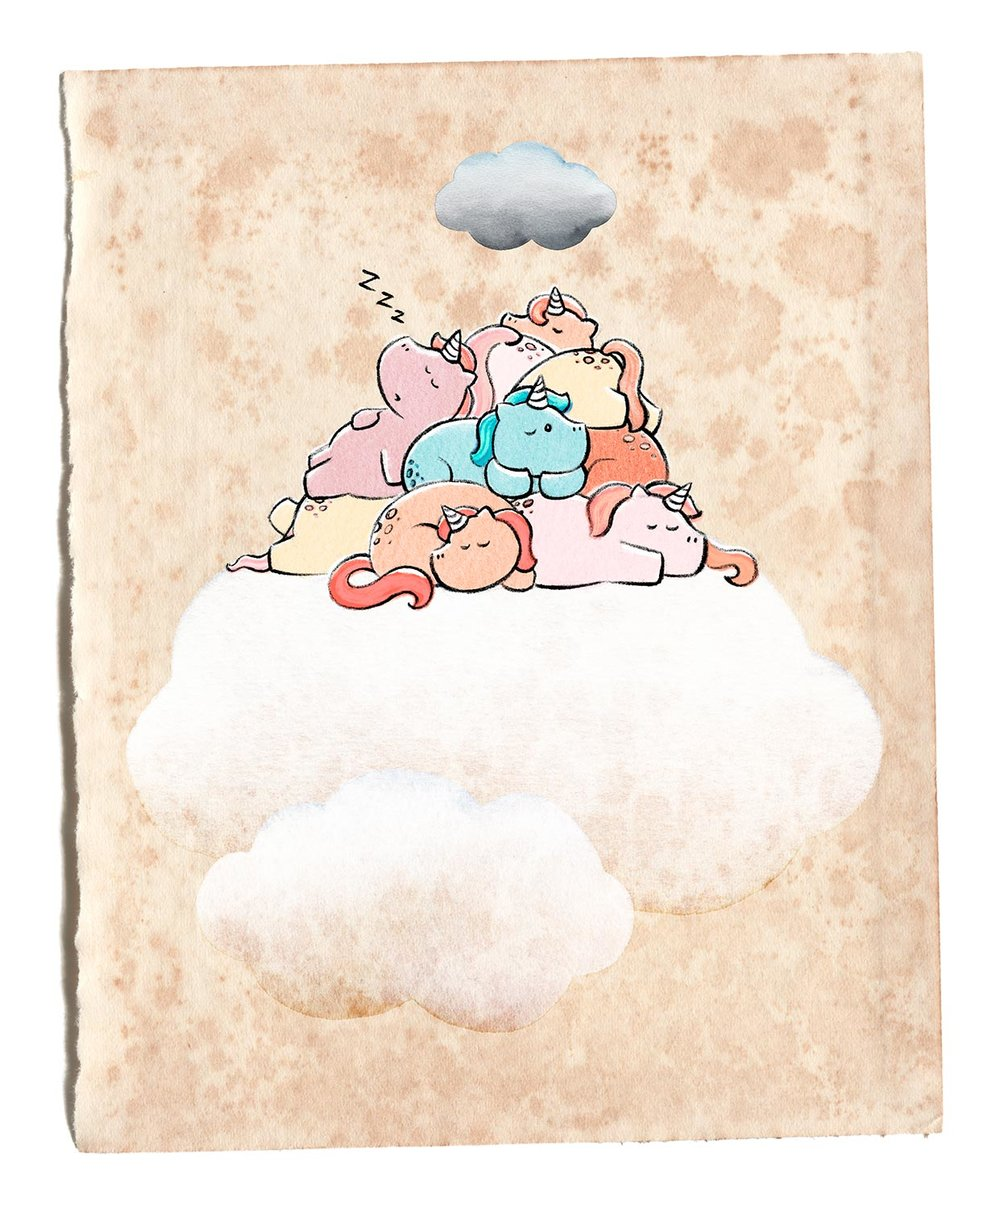 Unicorn-Sleep1.jpg